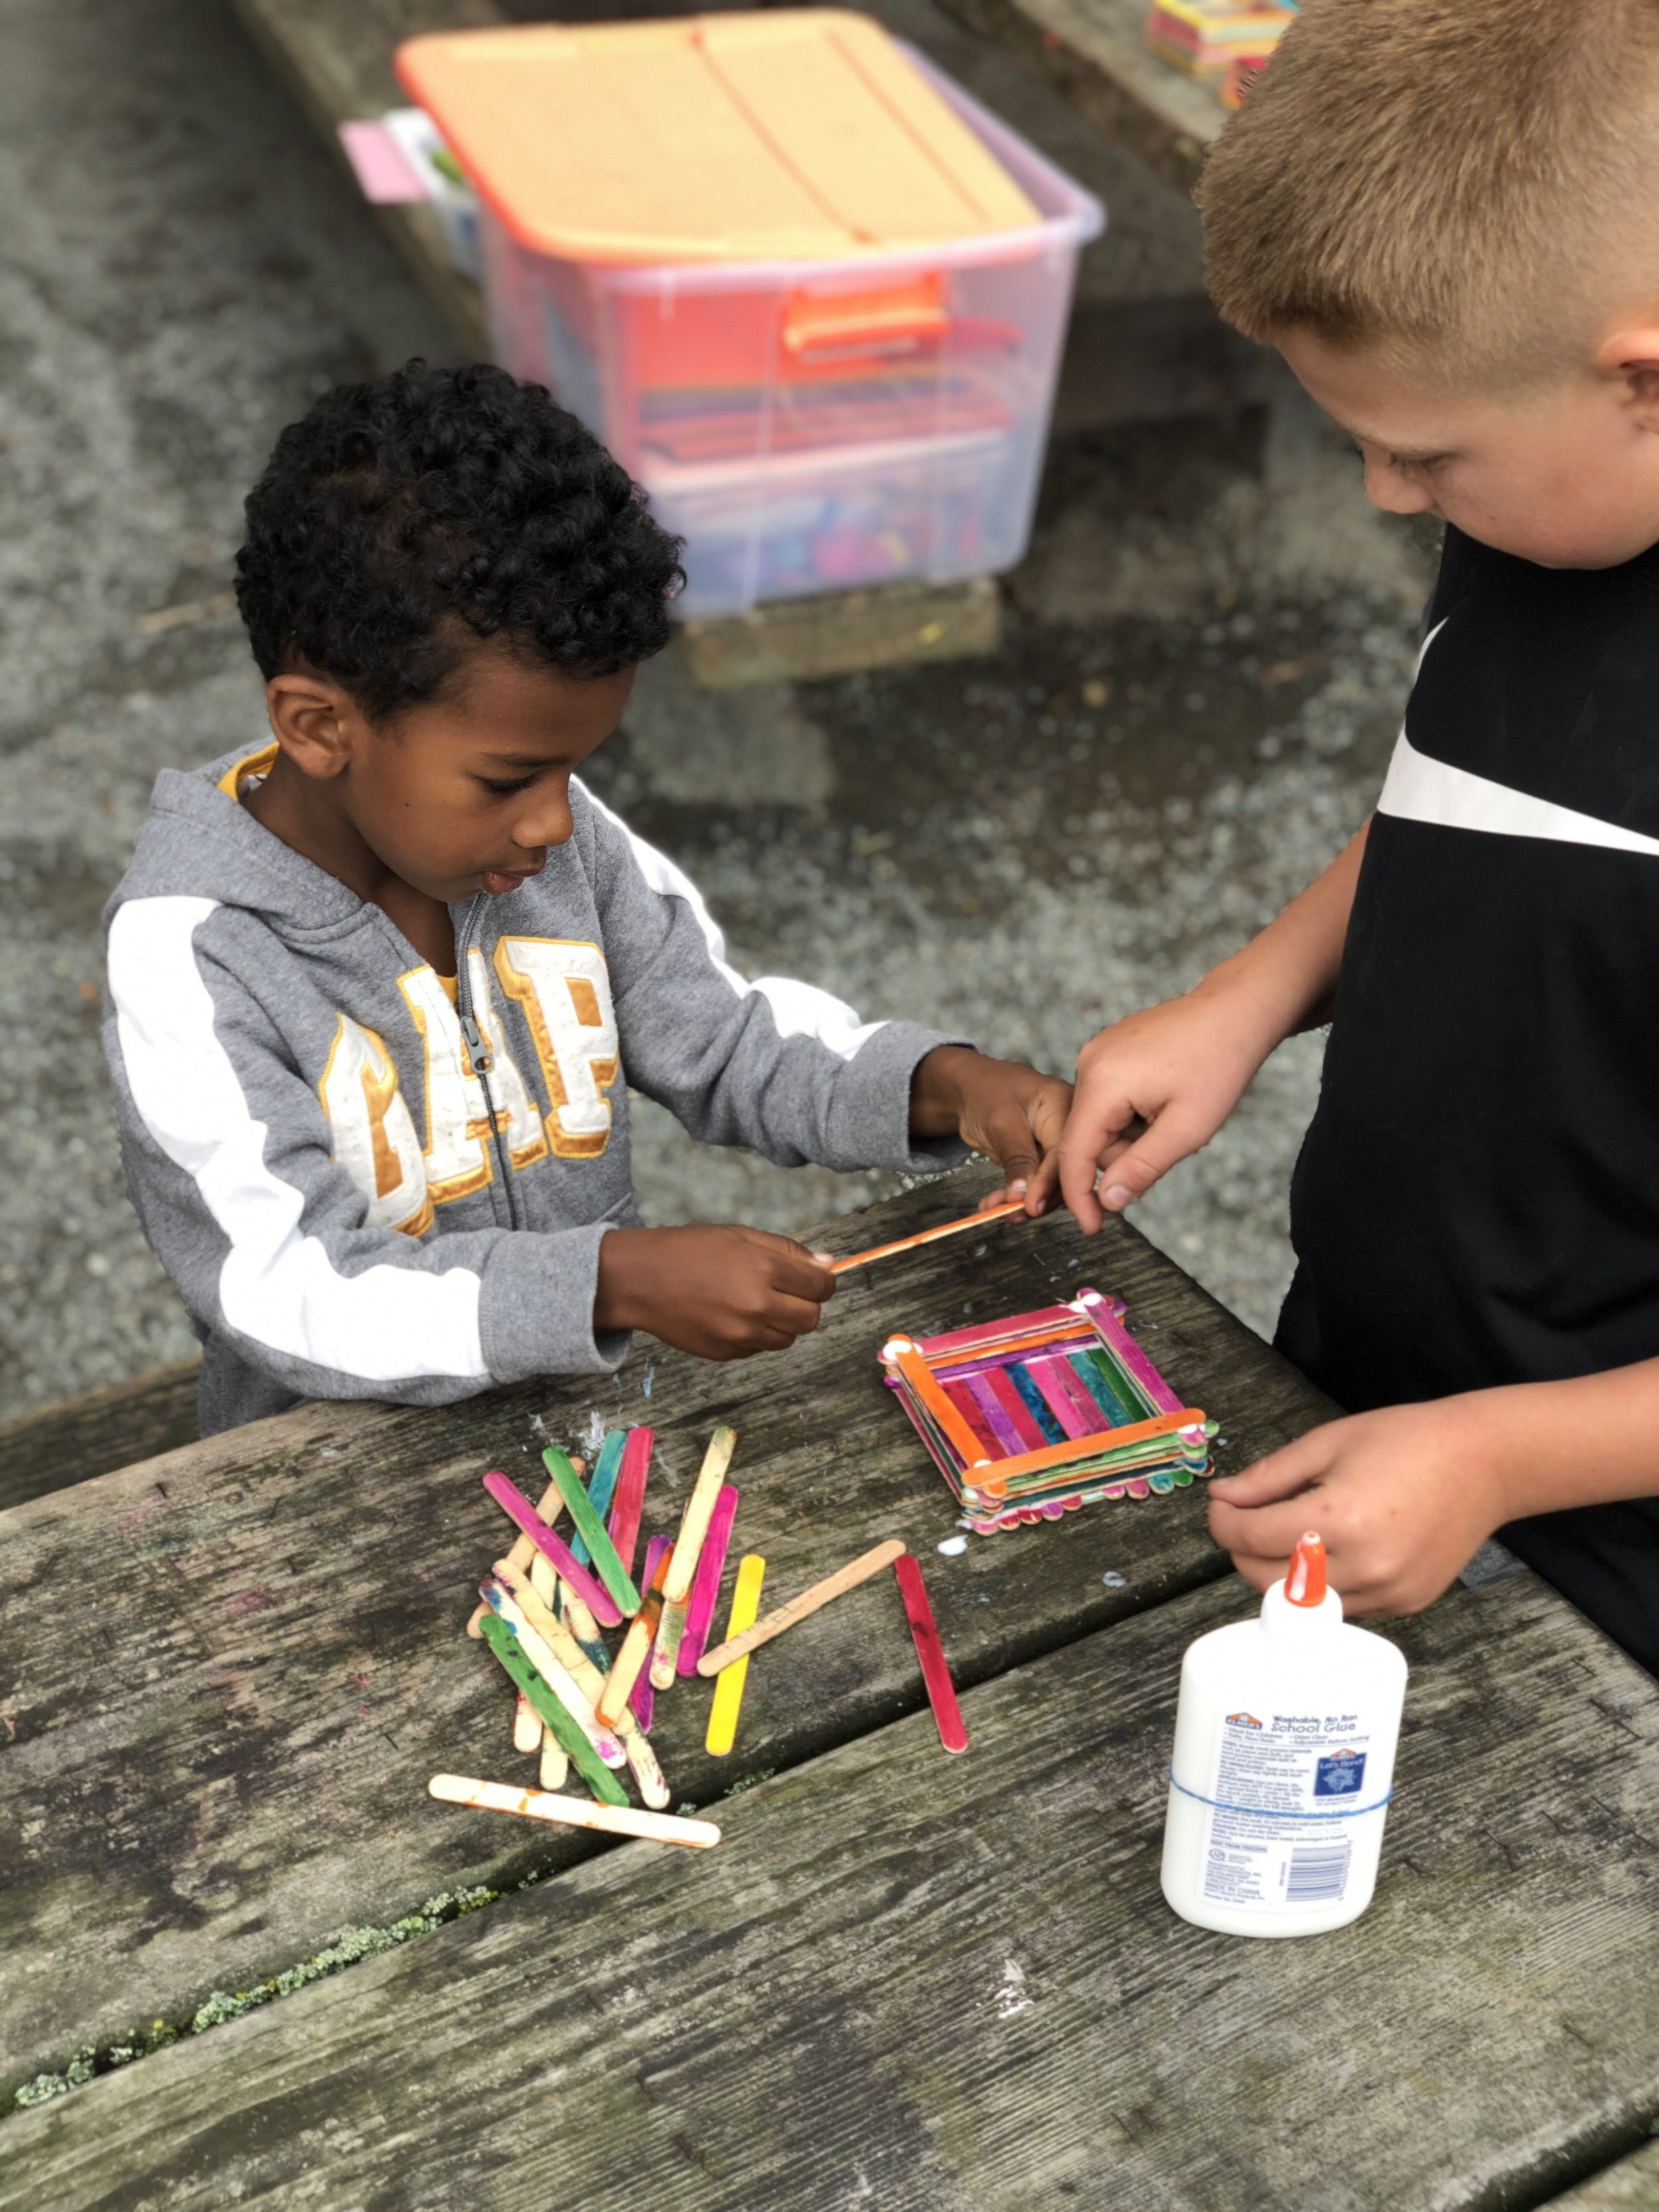 and ARTS - Daily art projects that express our creativity and are practical, such as treasure boxes, clocks and much more!